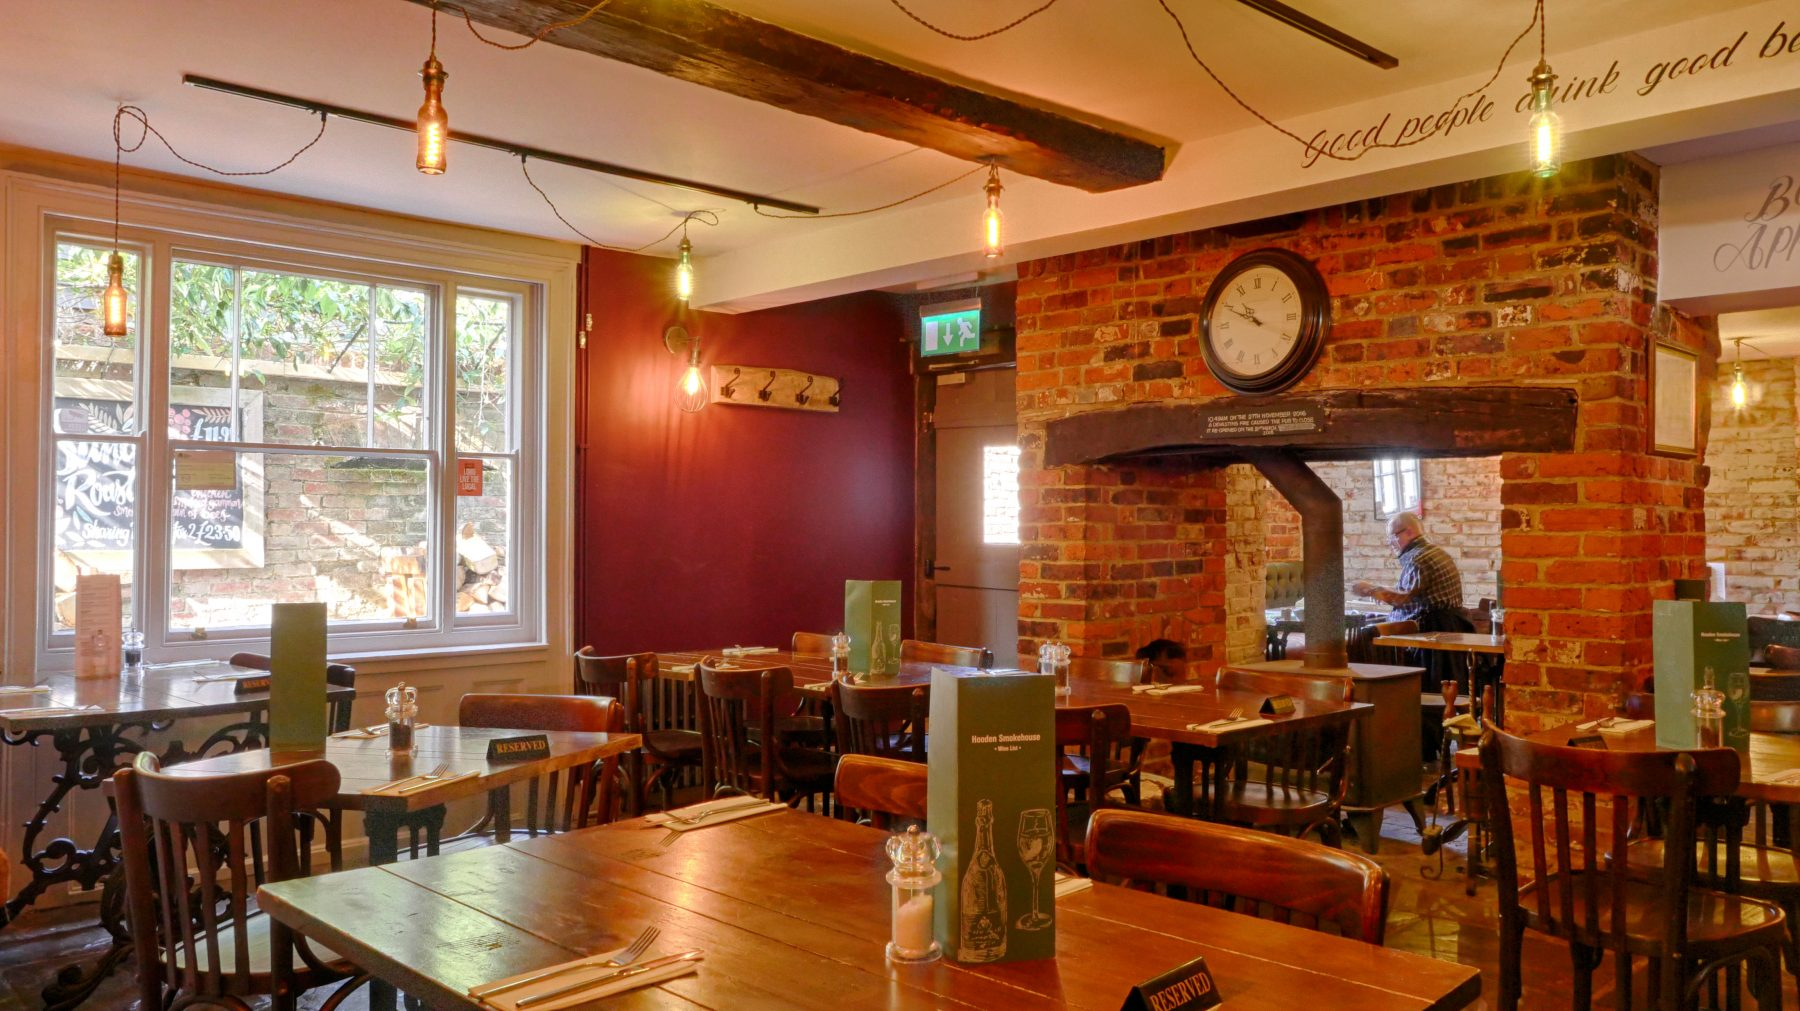 The Hooden is a traditional English pub with great food and a large garden., Contact Us, Hooden Smokehouse & Cellar, Hooden Smokehouse & Cellar